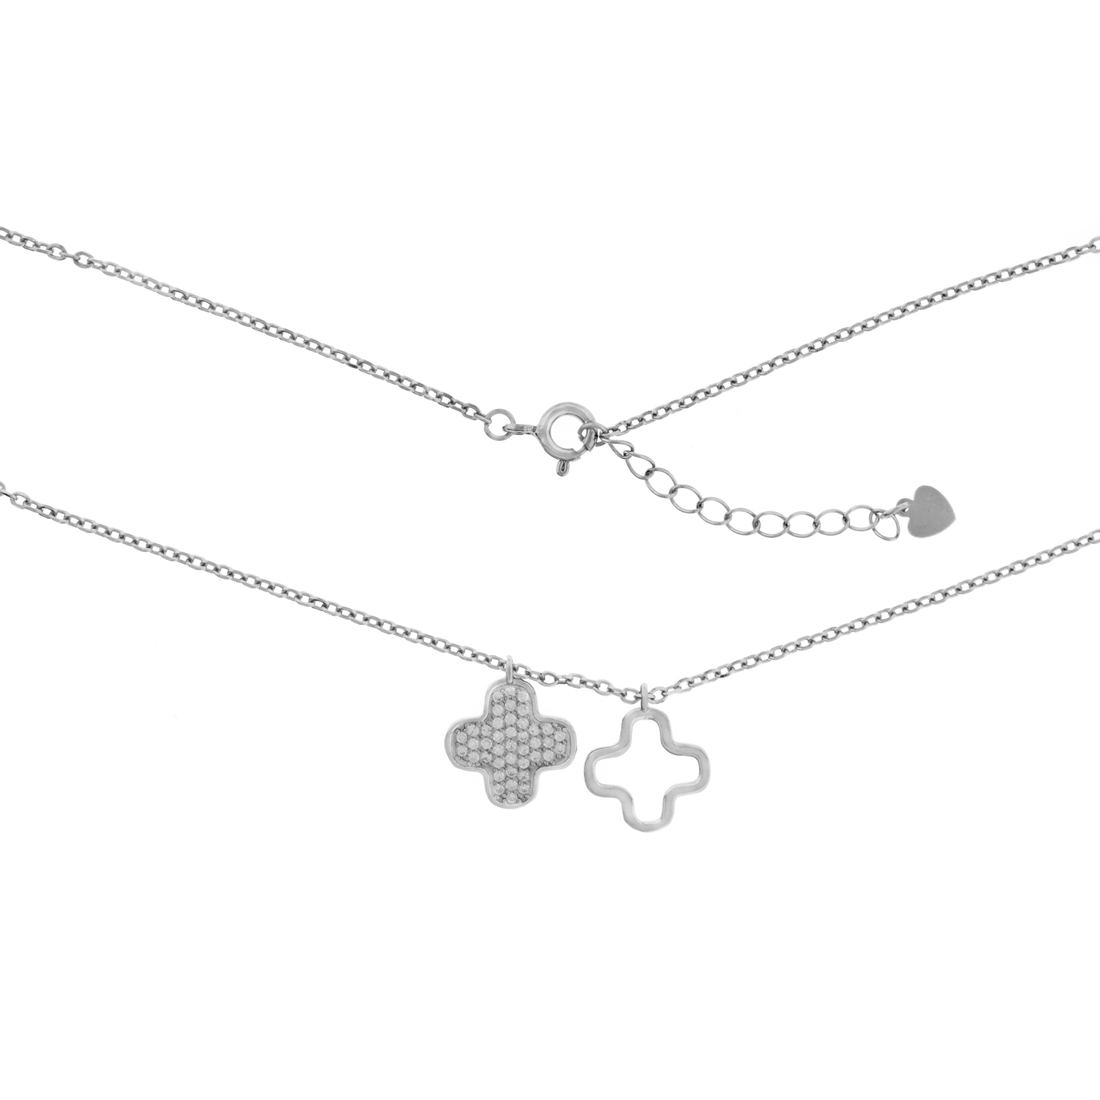 Clover Necklace with white CZ 17.5-18 in